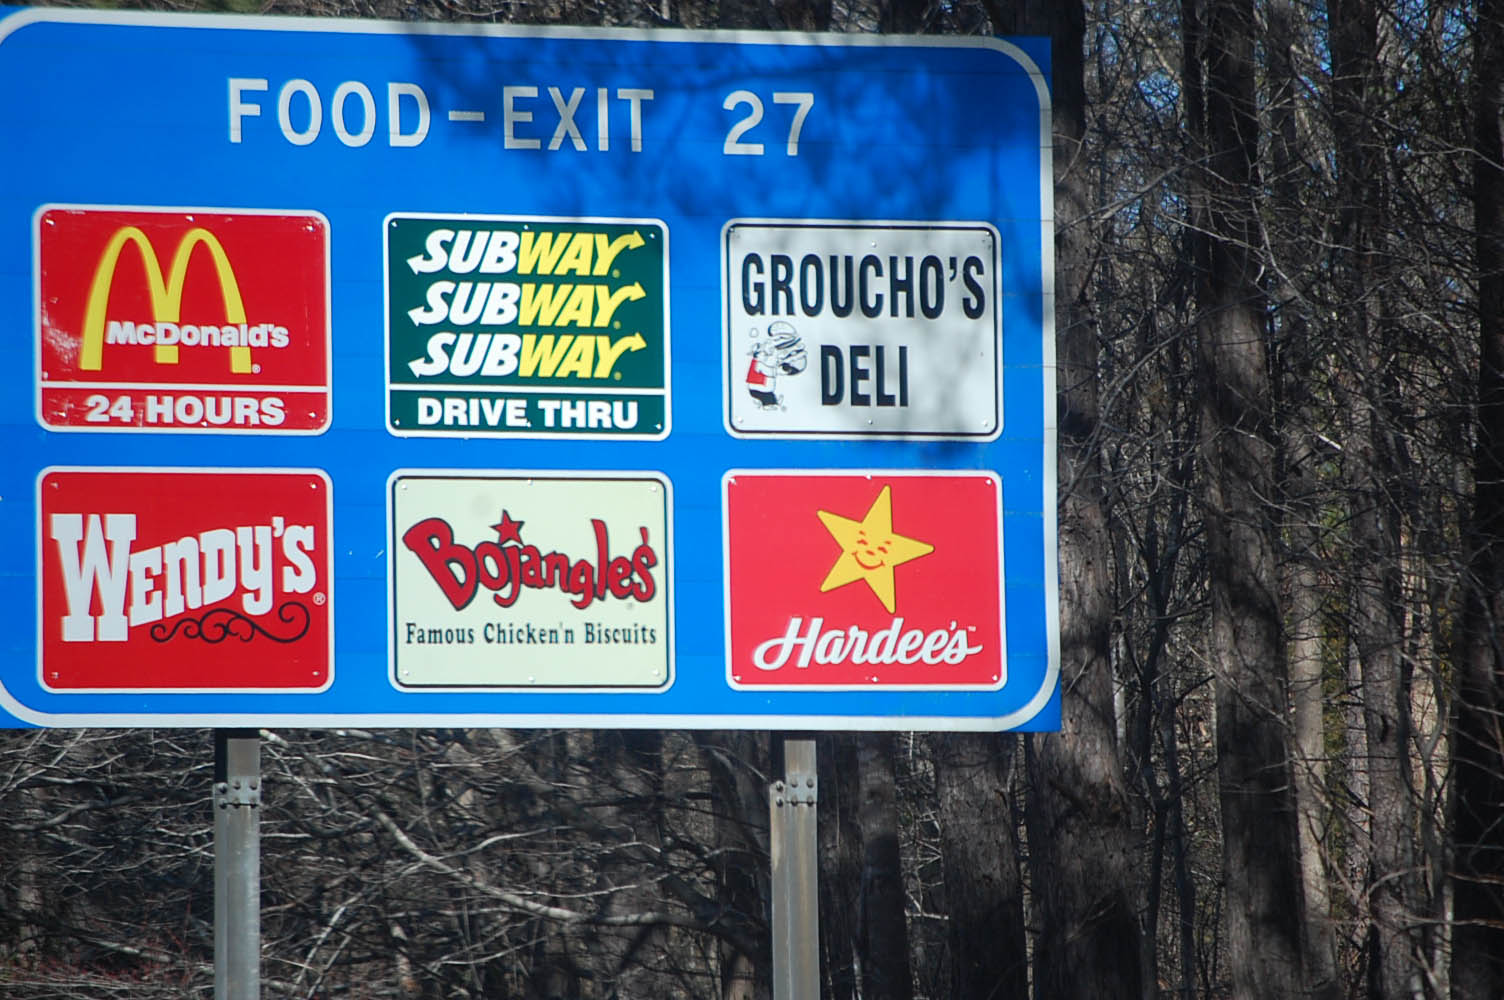 Is there anything to eat on the highway that is healthy?